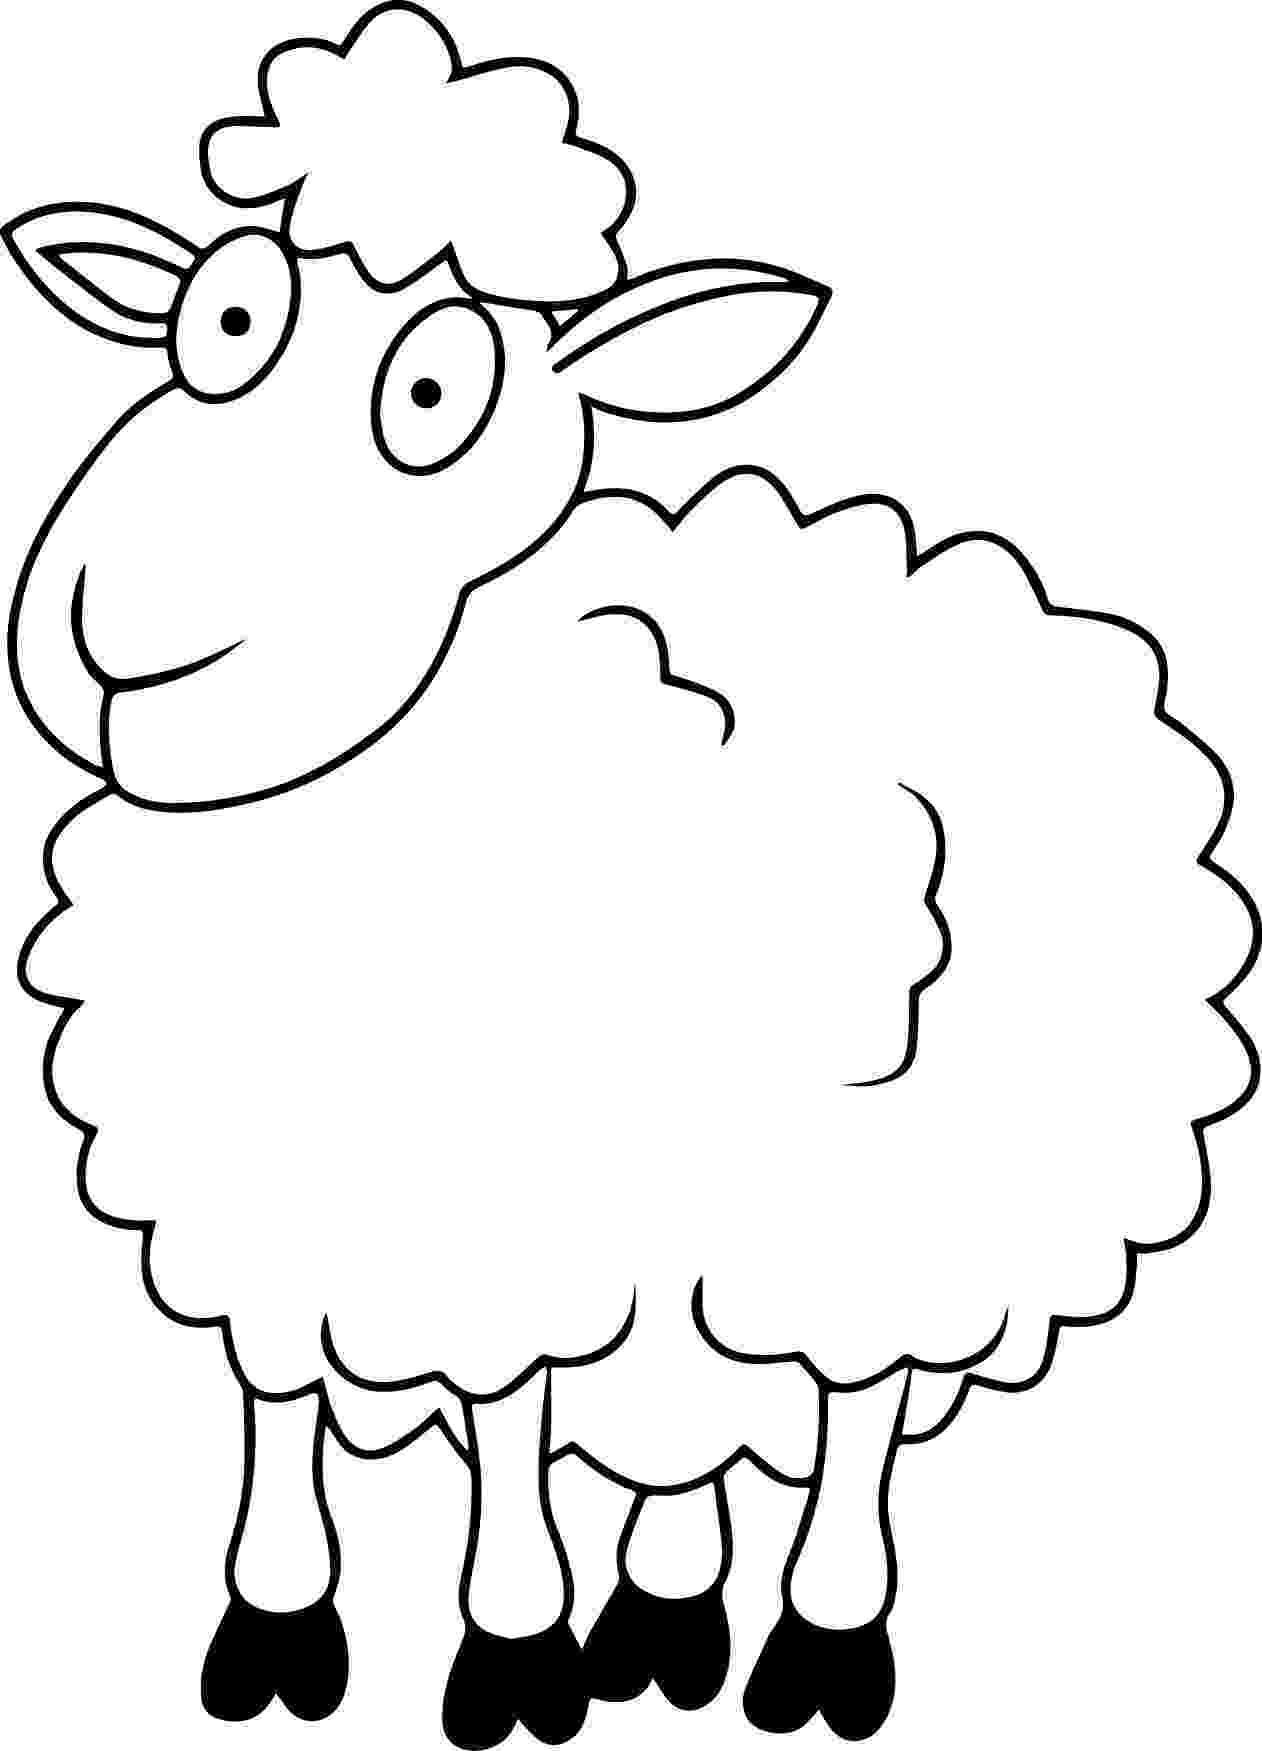 coloring book pages sheep sheep outline coloring page coloring home book pages sheep coloring